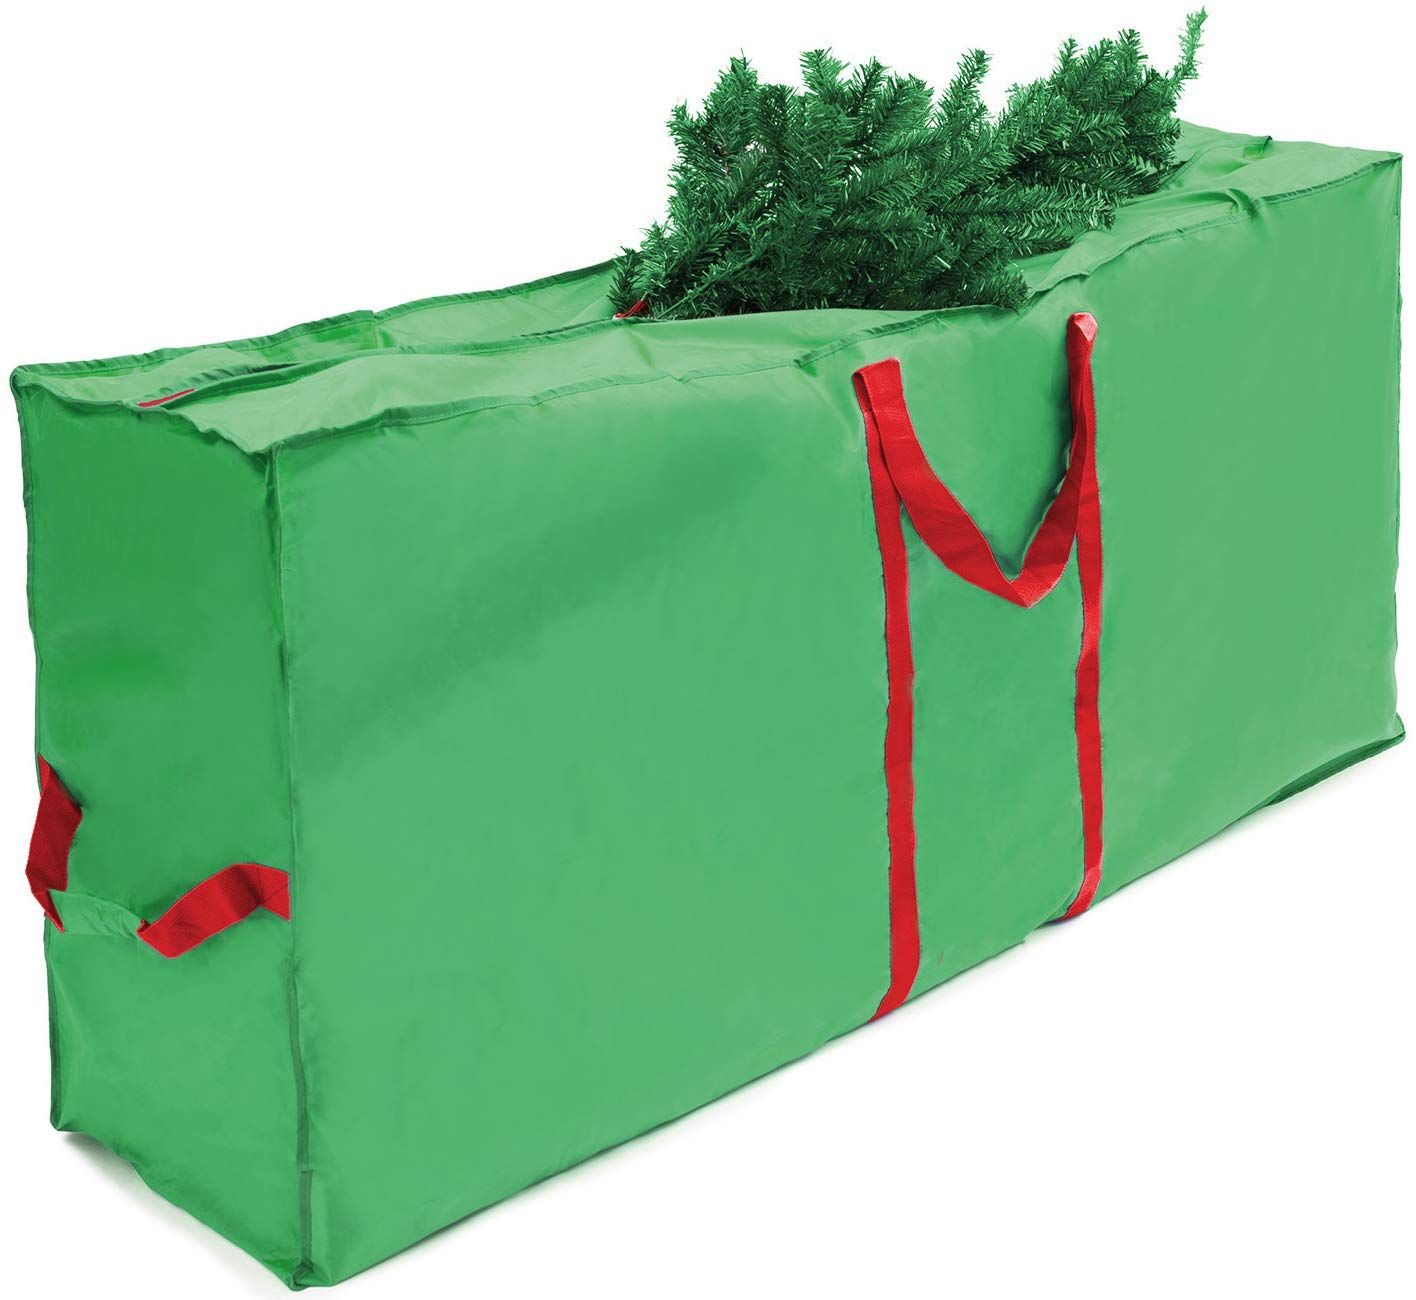 Christmas Tree Storage Bag By Vaultsaca Storage Bins Storage Containers Heavy Duty Christmas Tree Storage Christmas Tree Storage Bag Christmas Decorations